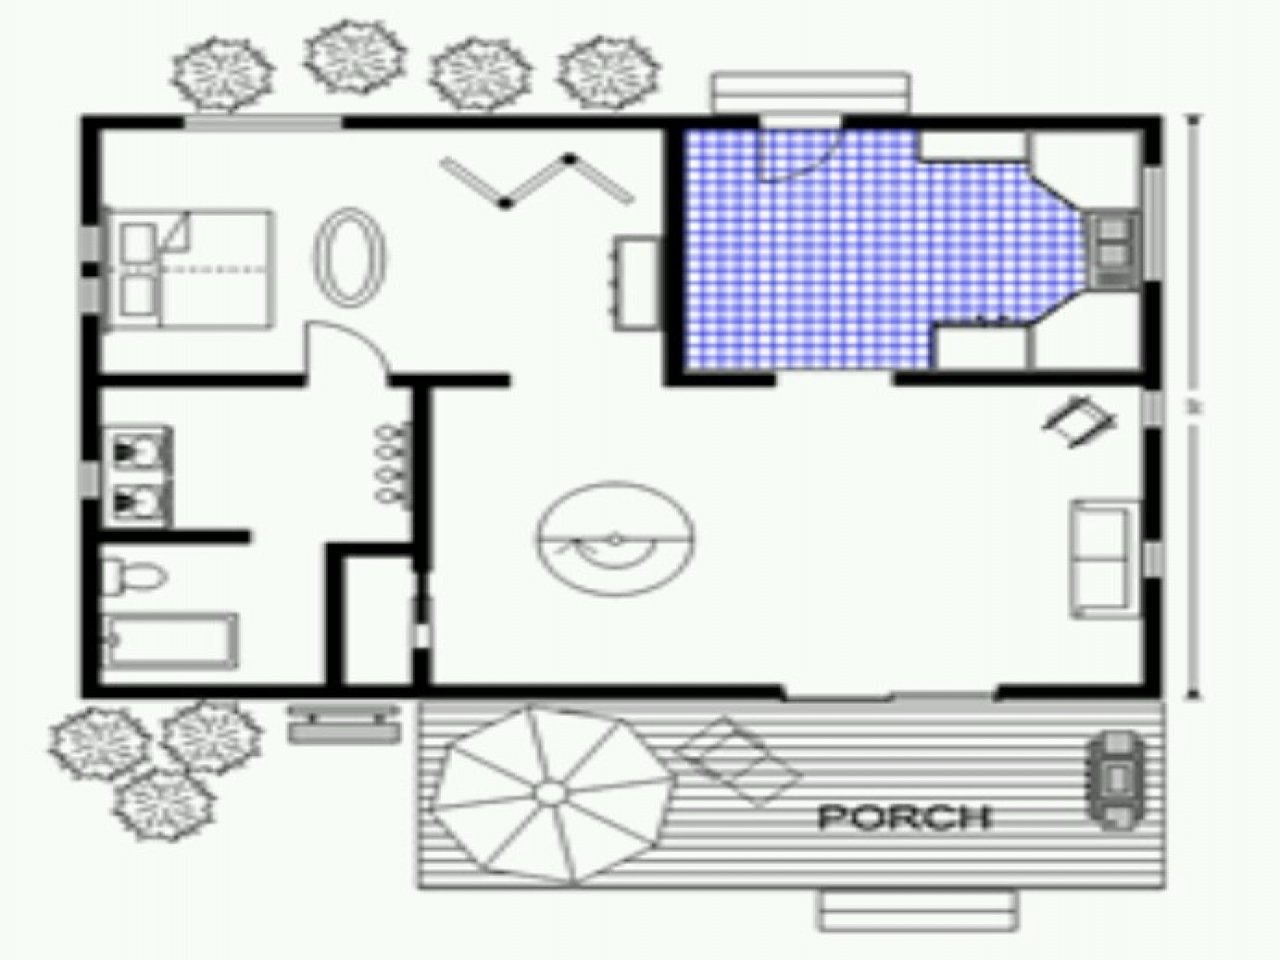 500 sq ft cabin lovely small homes and cottages pinterest How big is 600 square feet